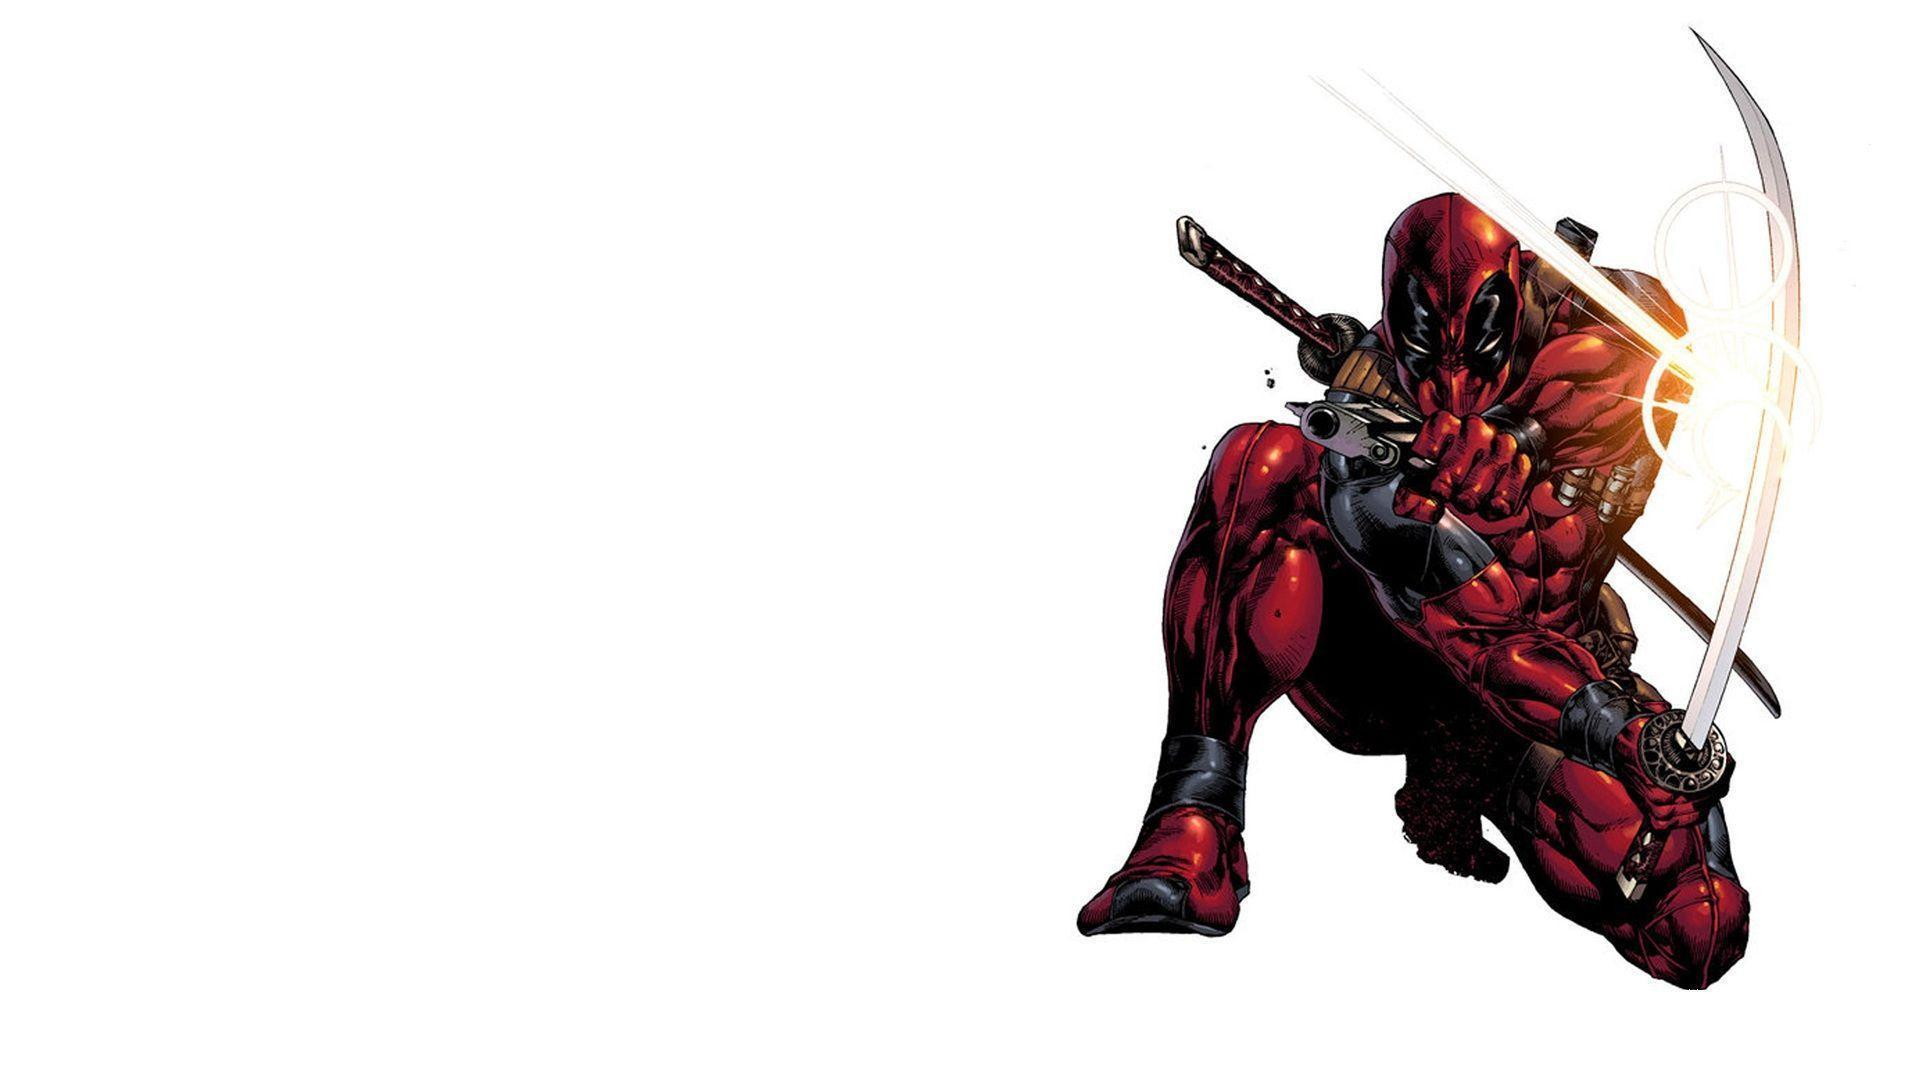 420 Deadpool Wallpapers